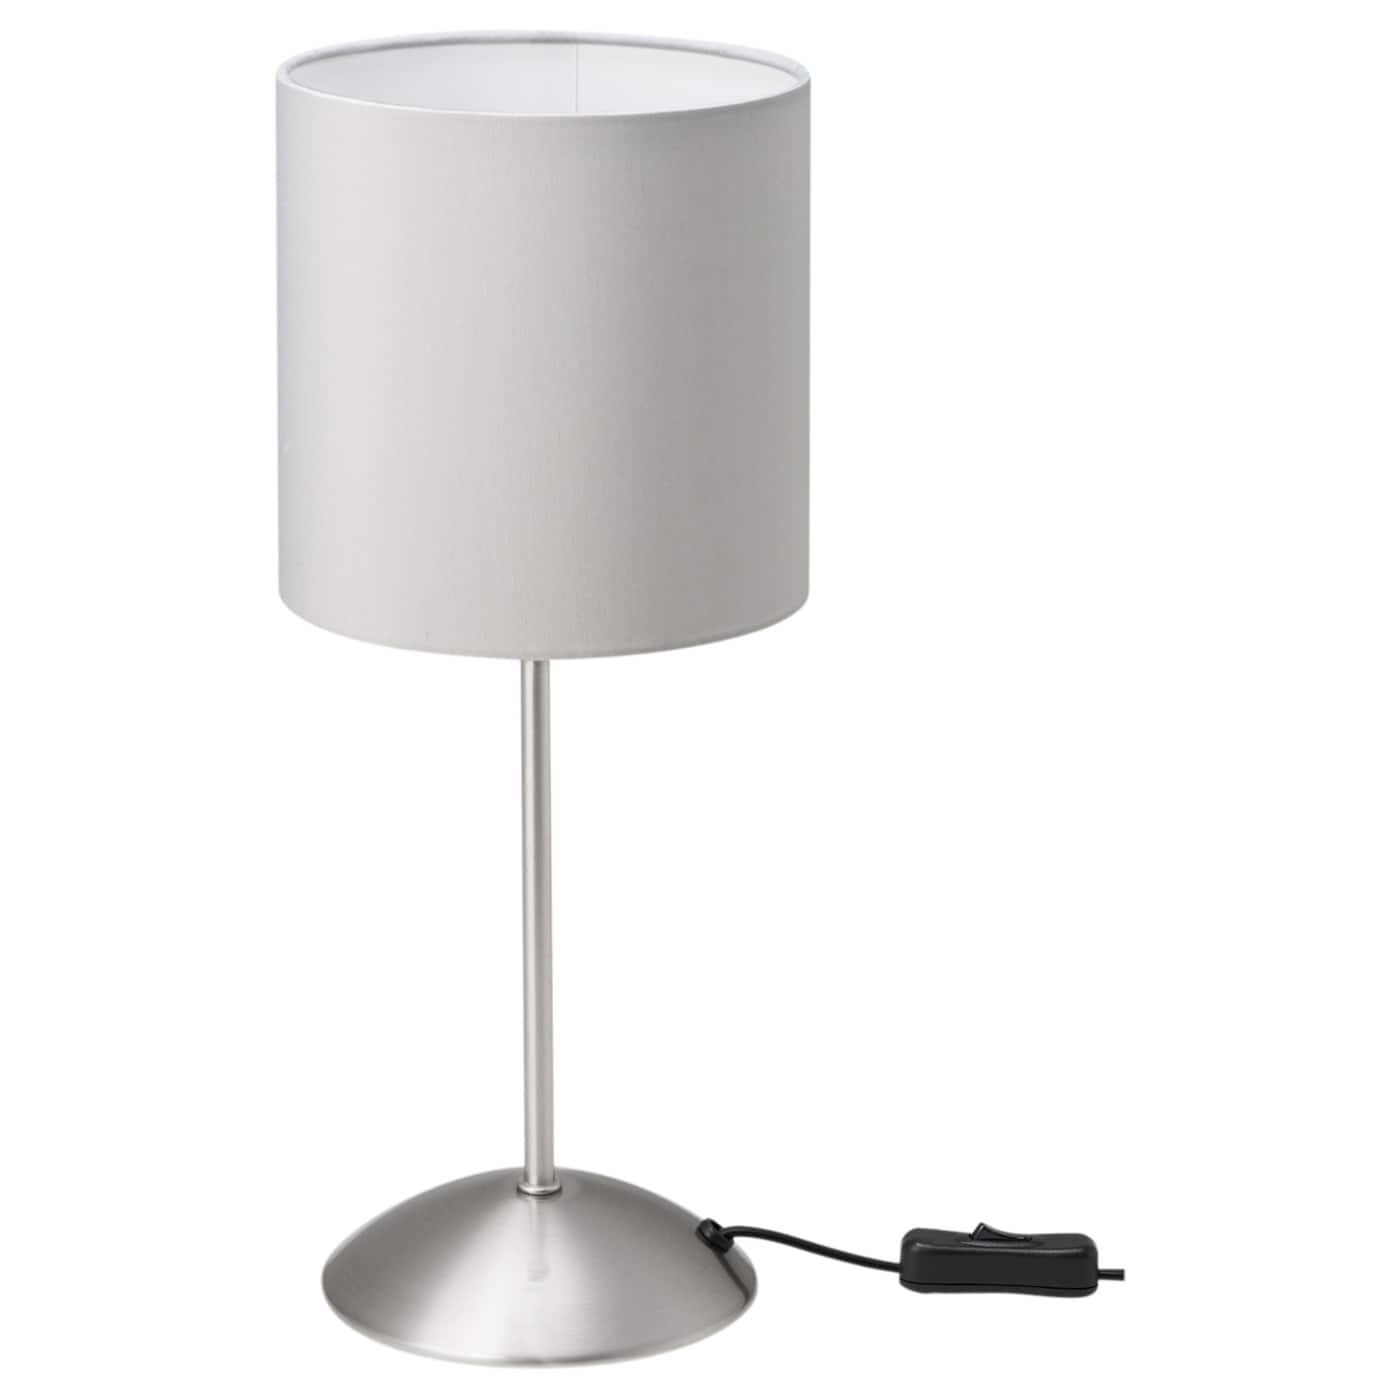 table lamps bedside lamps ikea. Black Bedroom Furniture Sets. Home Design Ideas